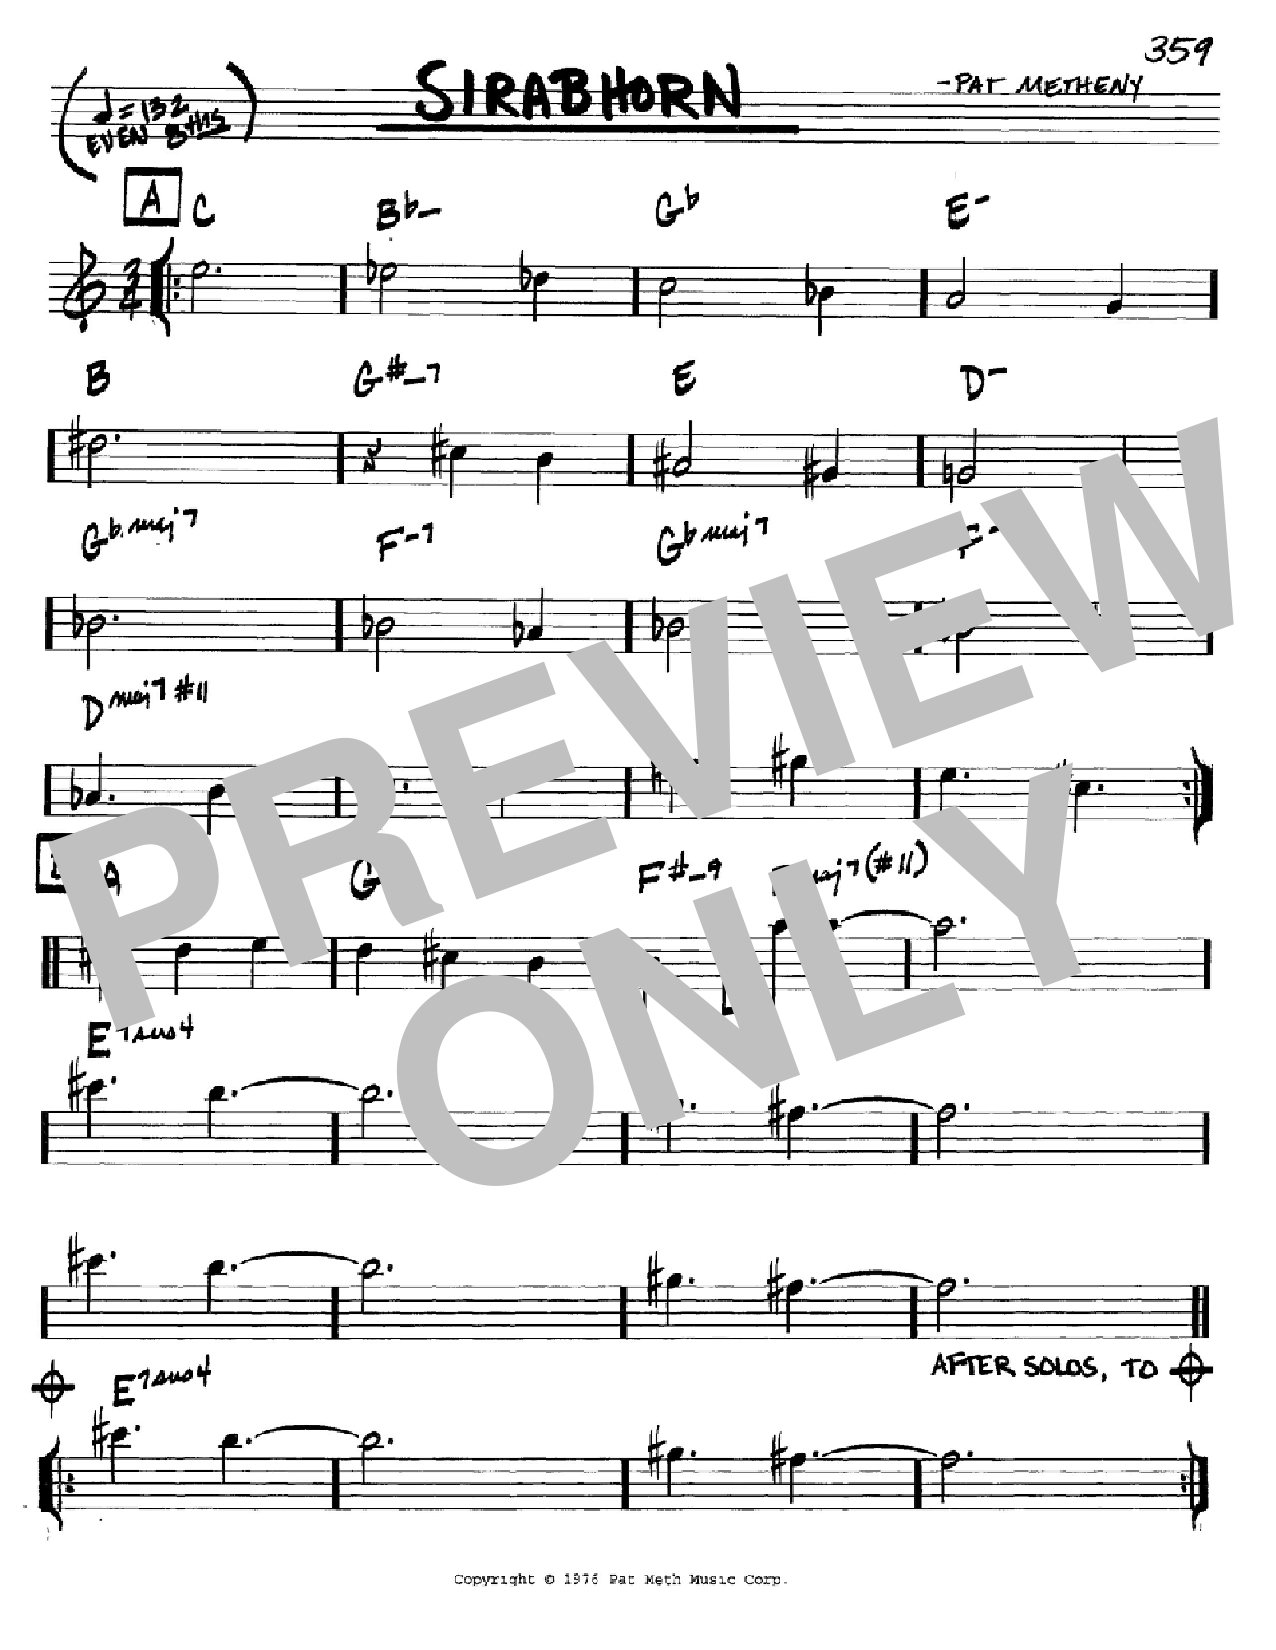 Sirabhorn Sheet Music